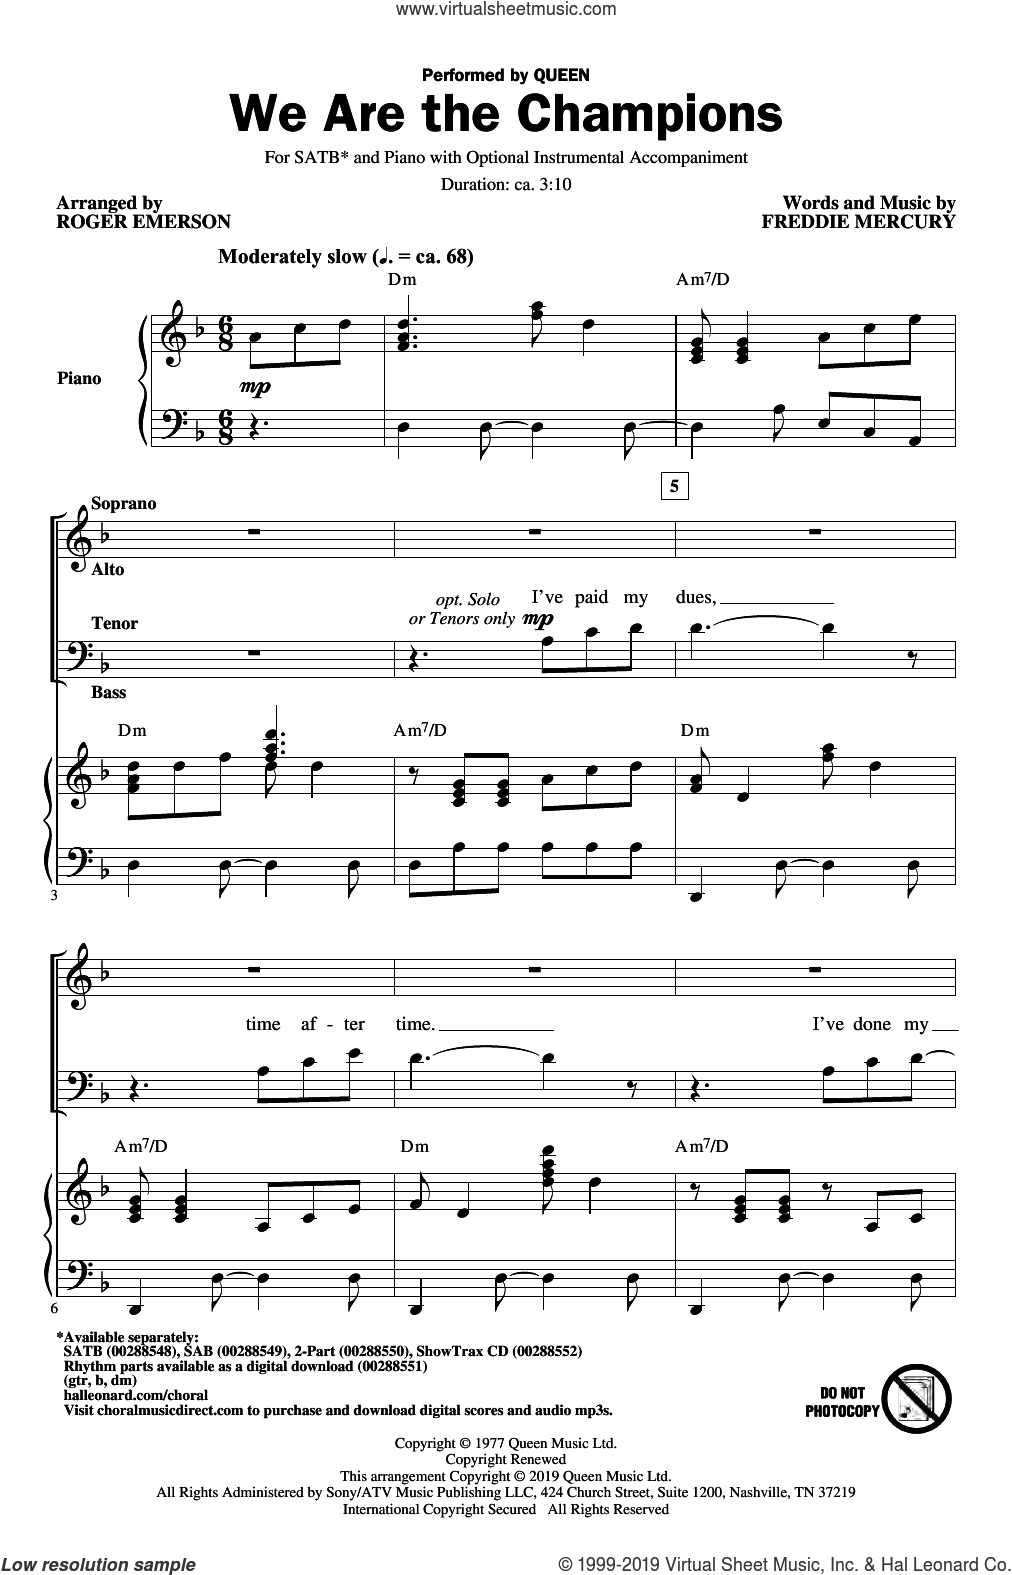 We Are The Champions (arr. Roger Emerson) sheet music for choir (SATB: soprano, alto, tenor, bass) by Queen, Roger Emerson and Freddie Mercury, intermediate skill level